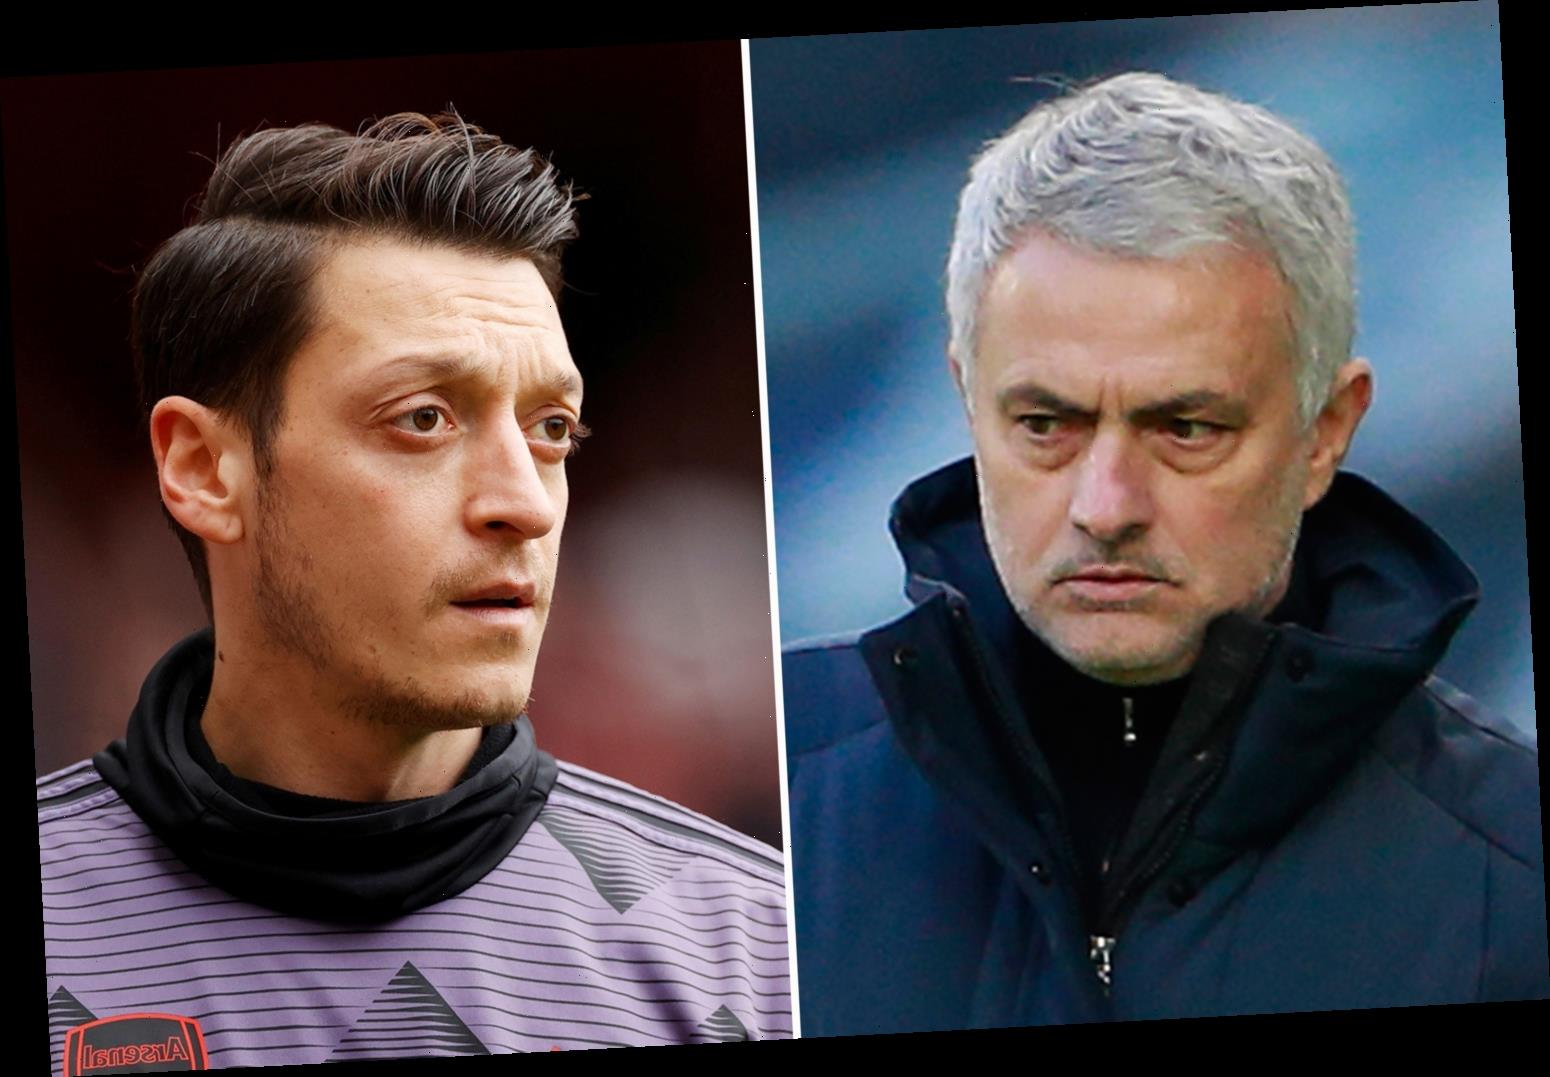 Jose Mourinho's brutal Mesut Ozil put down after Arsenal star said he'd rather retire than play for Tottenham